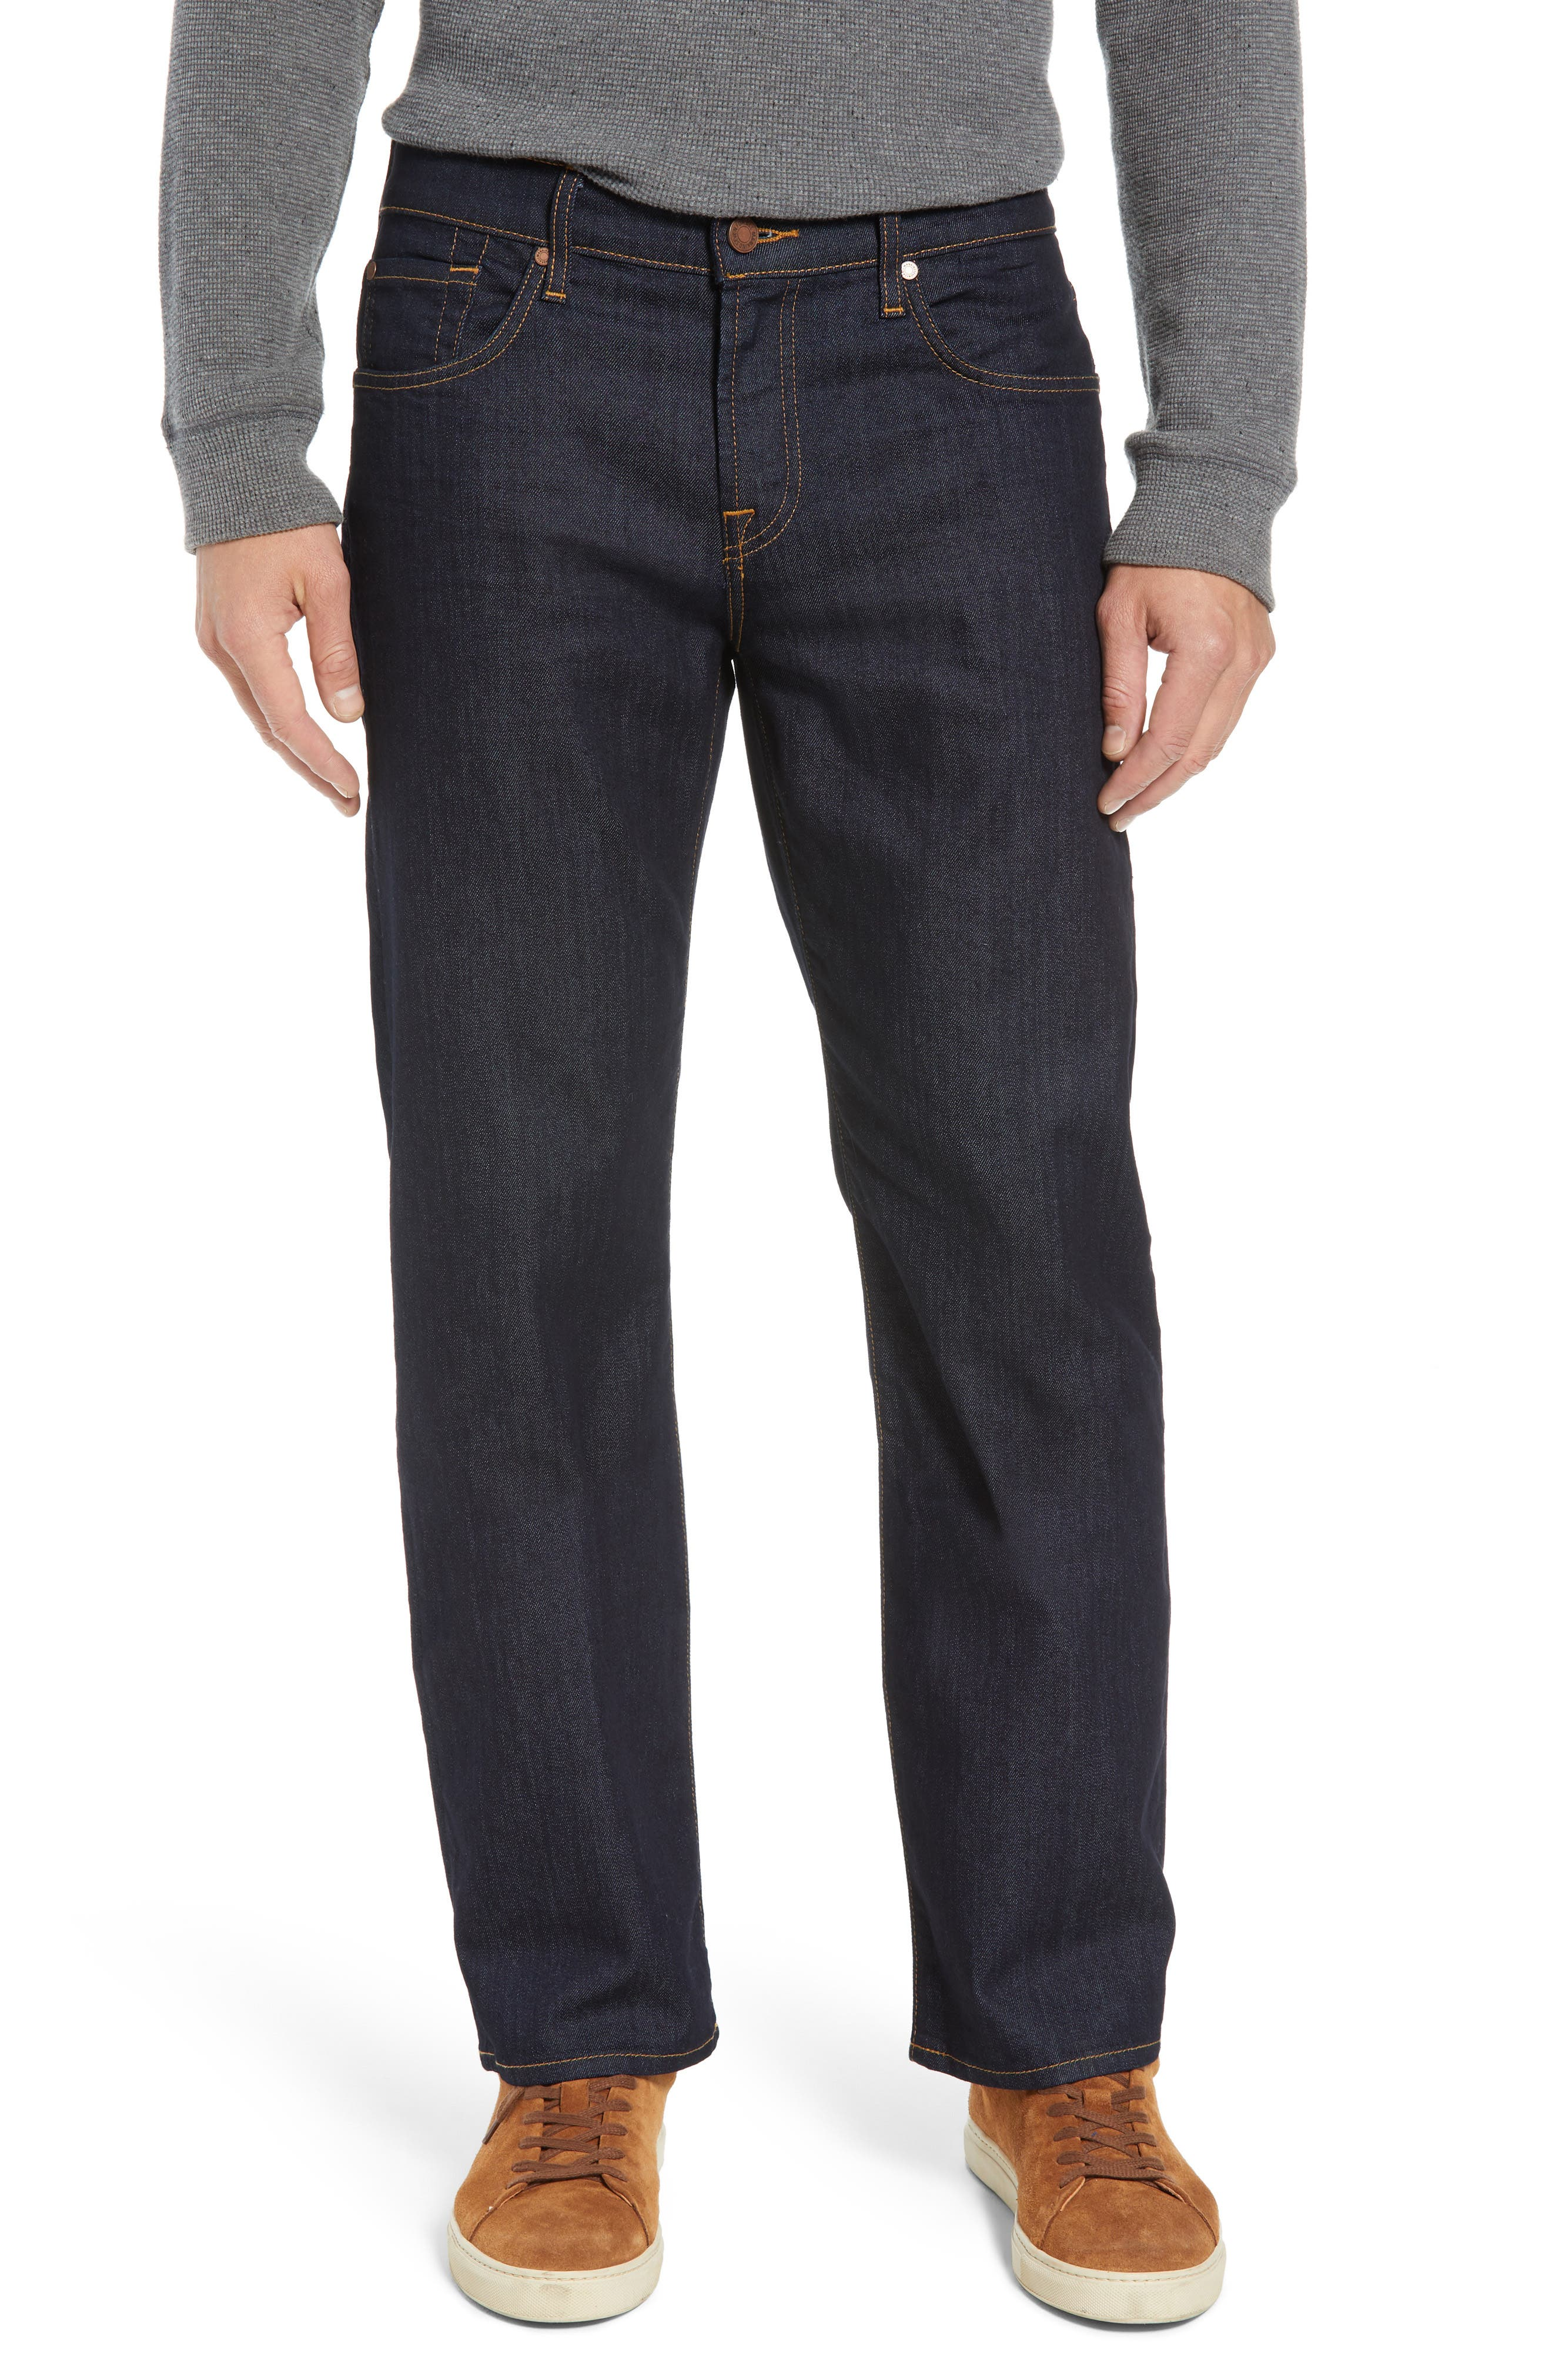 Austyn Airweft Relaxed Straight Leg Jeans,                         Main,                         color, CAVEAT